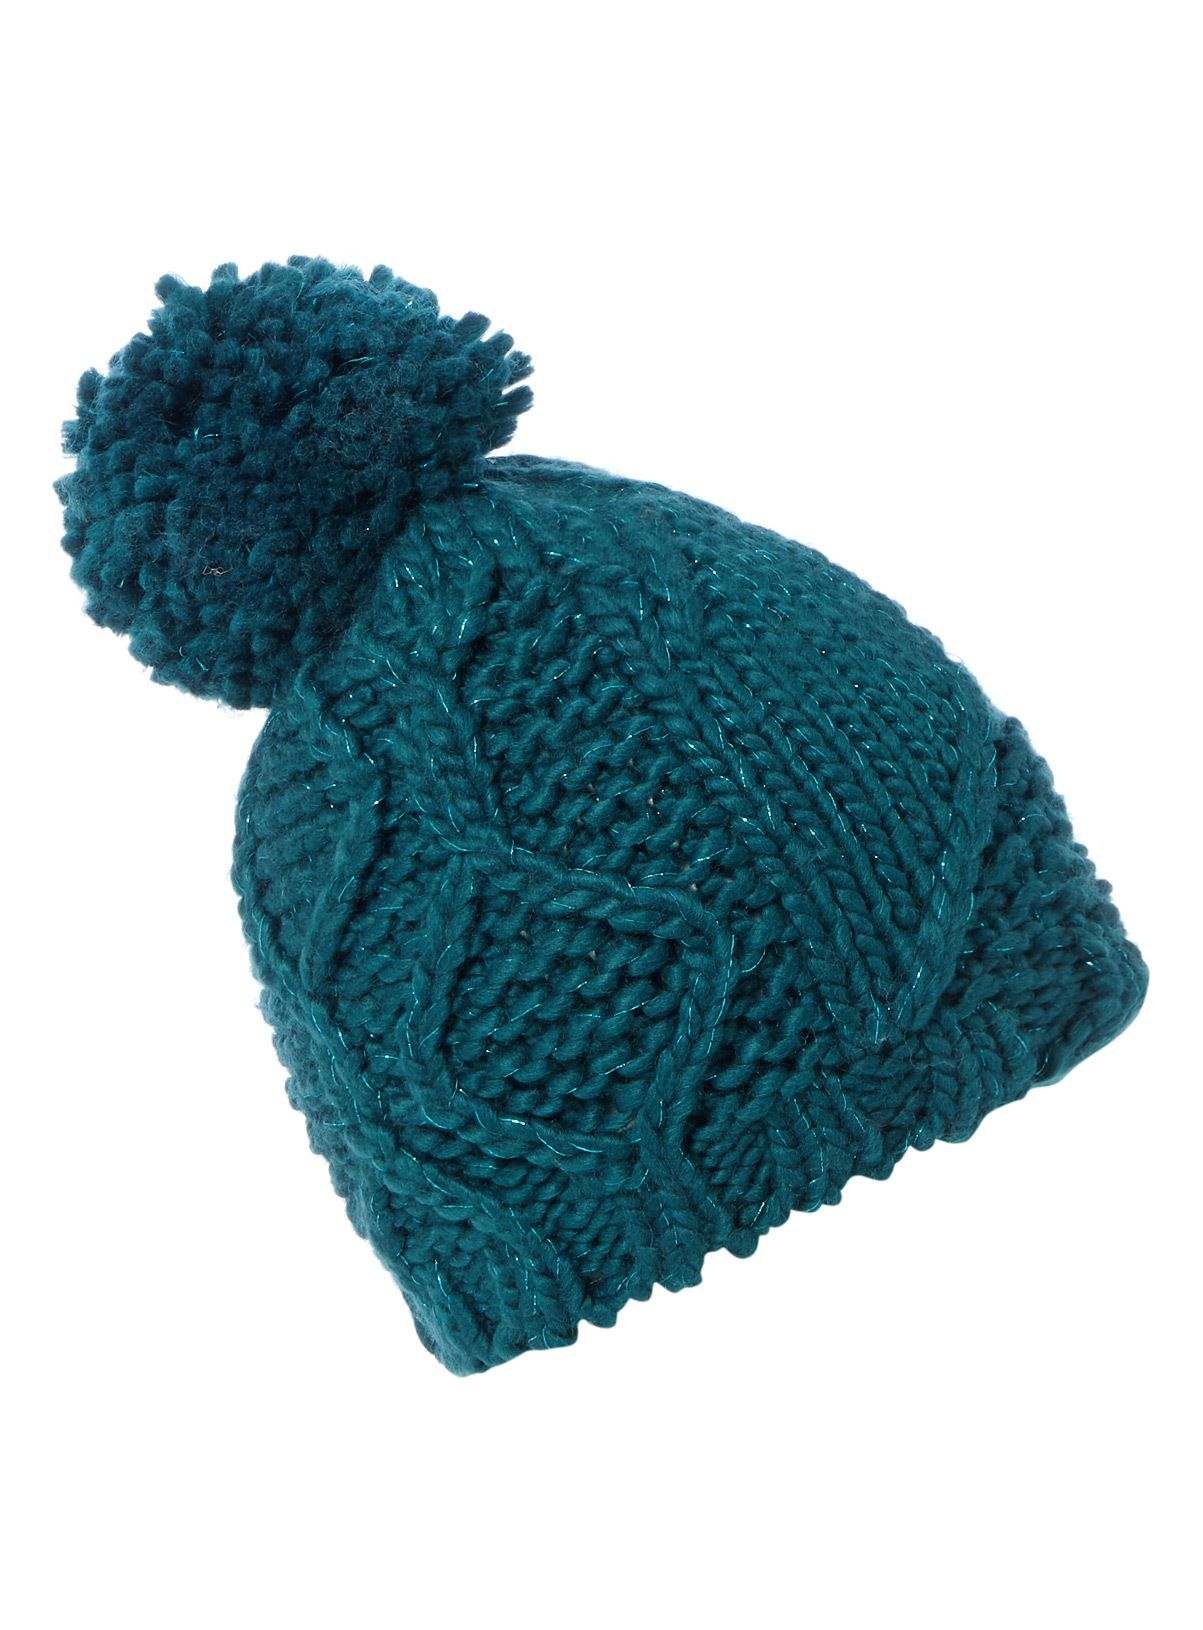 463bba708048f Crafted in a teal cable knit with metallic fibres